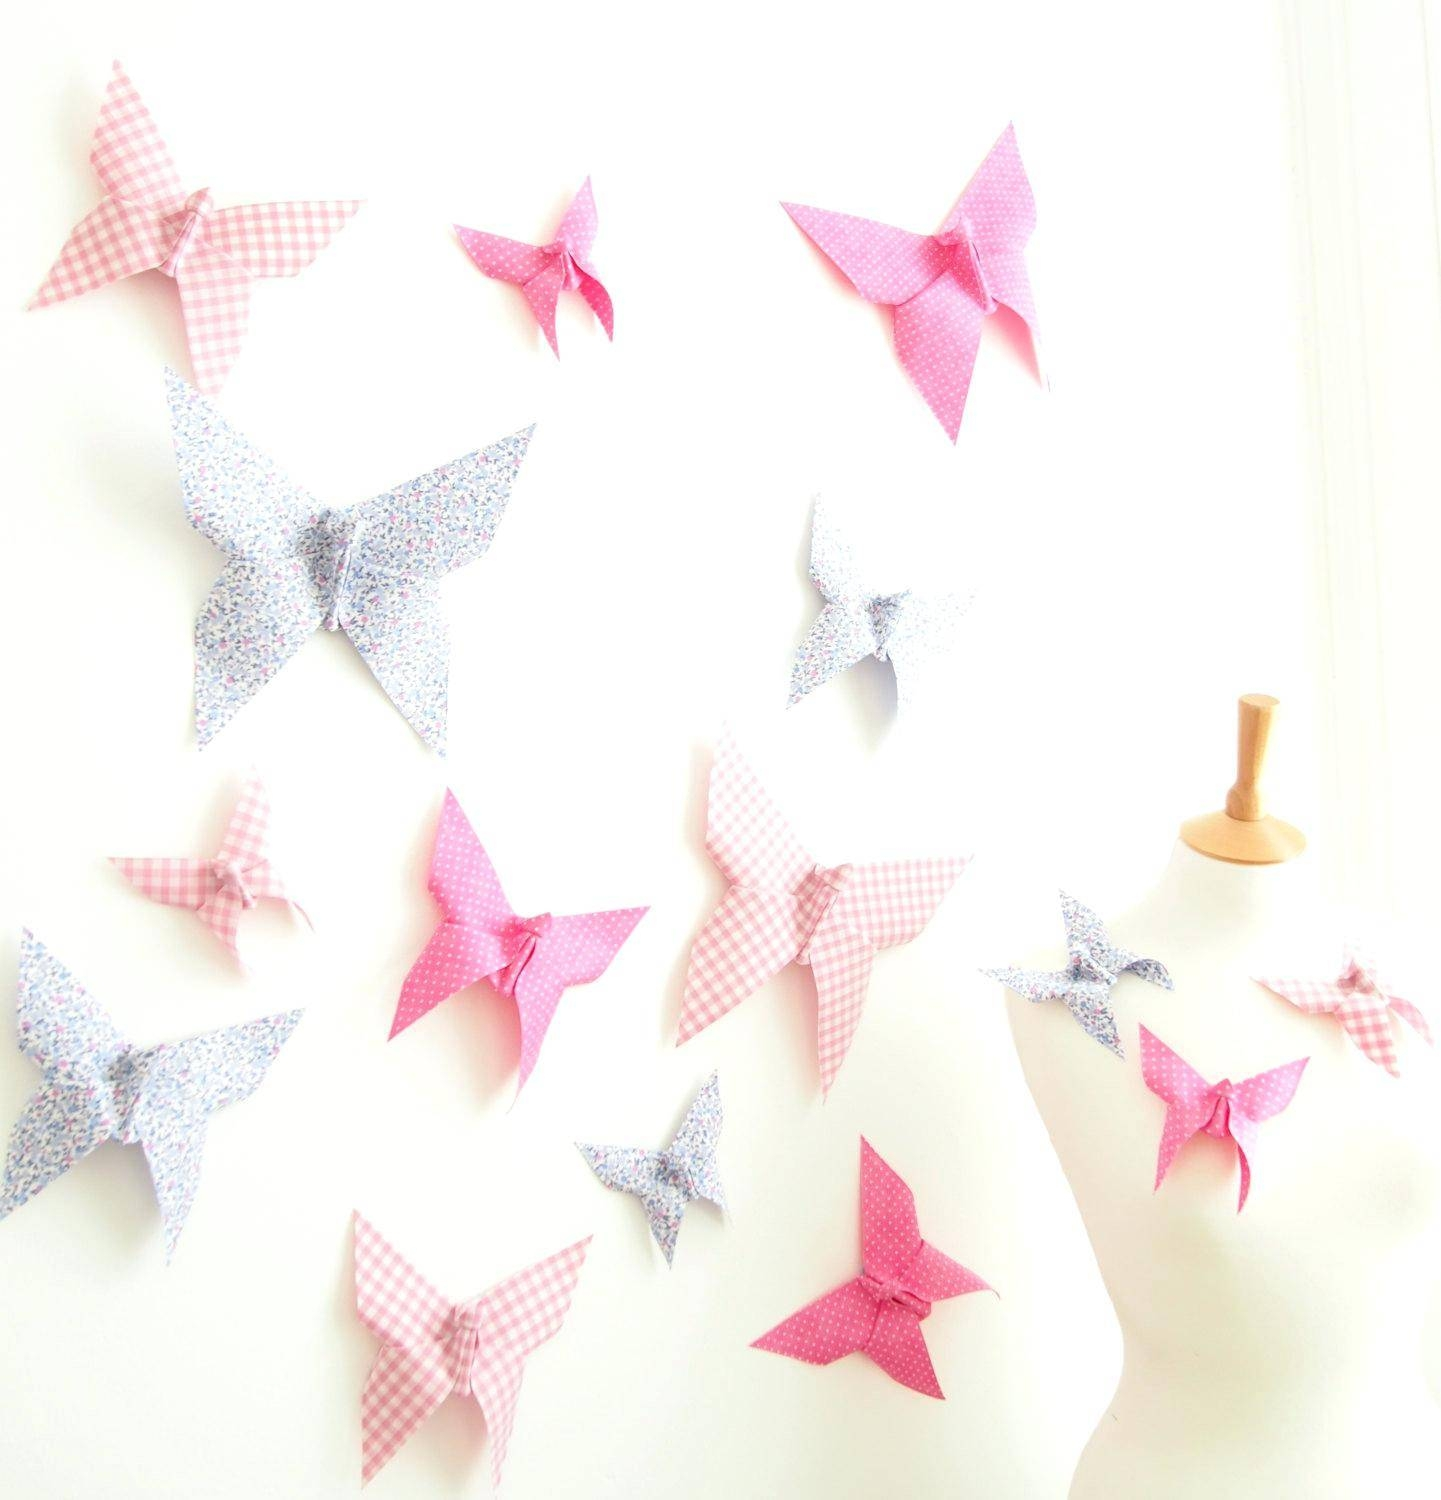 Wall Decor : 58 Zoom Mesmerizing Zoom Wall Decor Templates Intended For Latest Diy 3d Butterfly Wall Art (View 11 of 20)